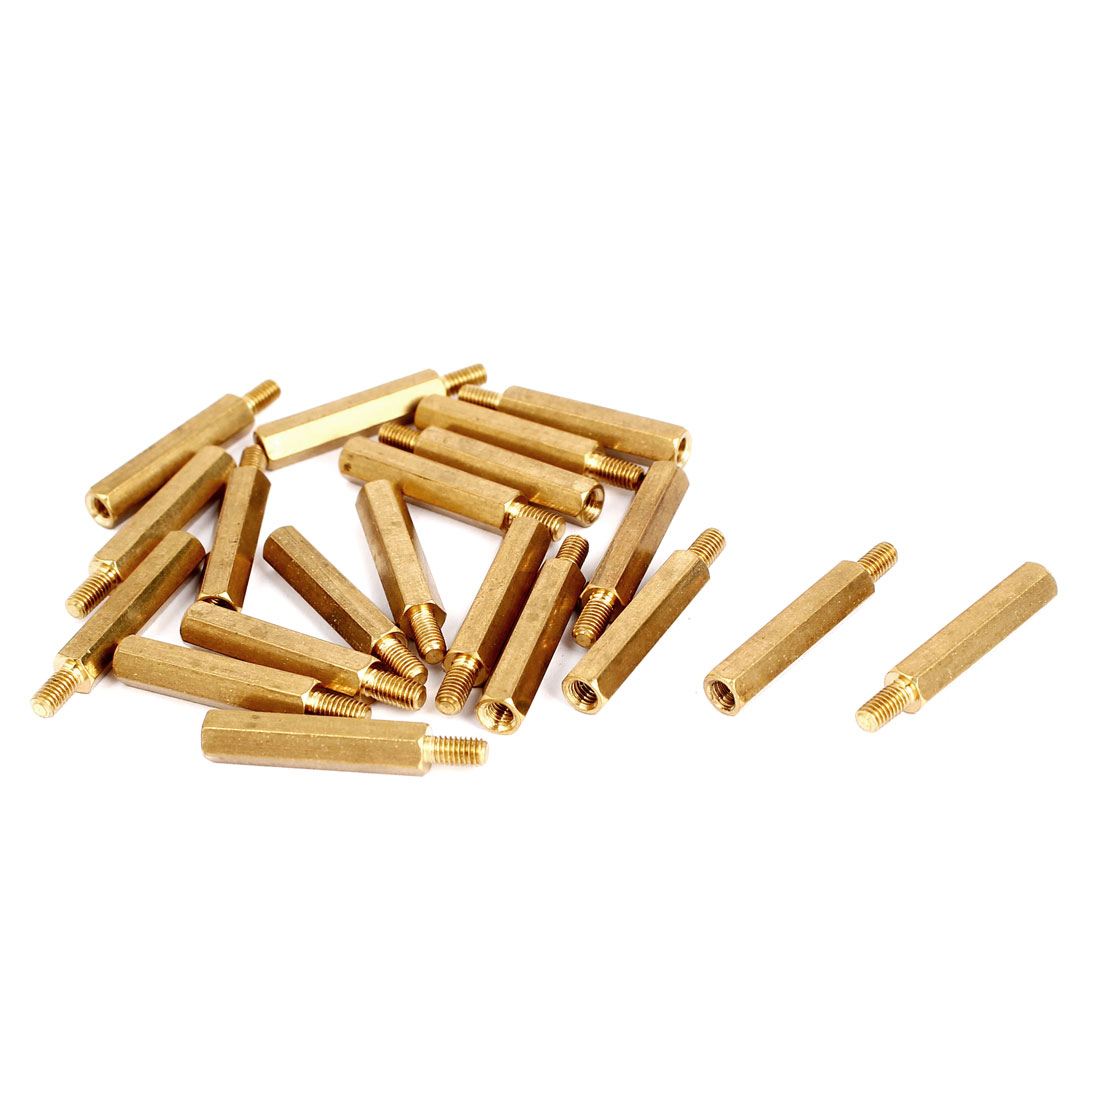 M3x22+6mm Male/Female Threaded Brass Hex Tapped Hexagonal Spacer Standoff Pillar 20pcs